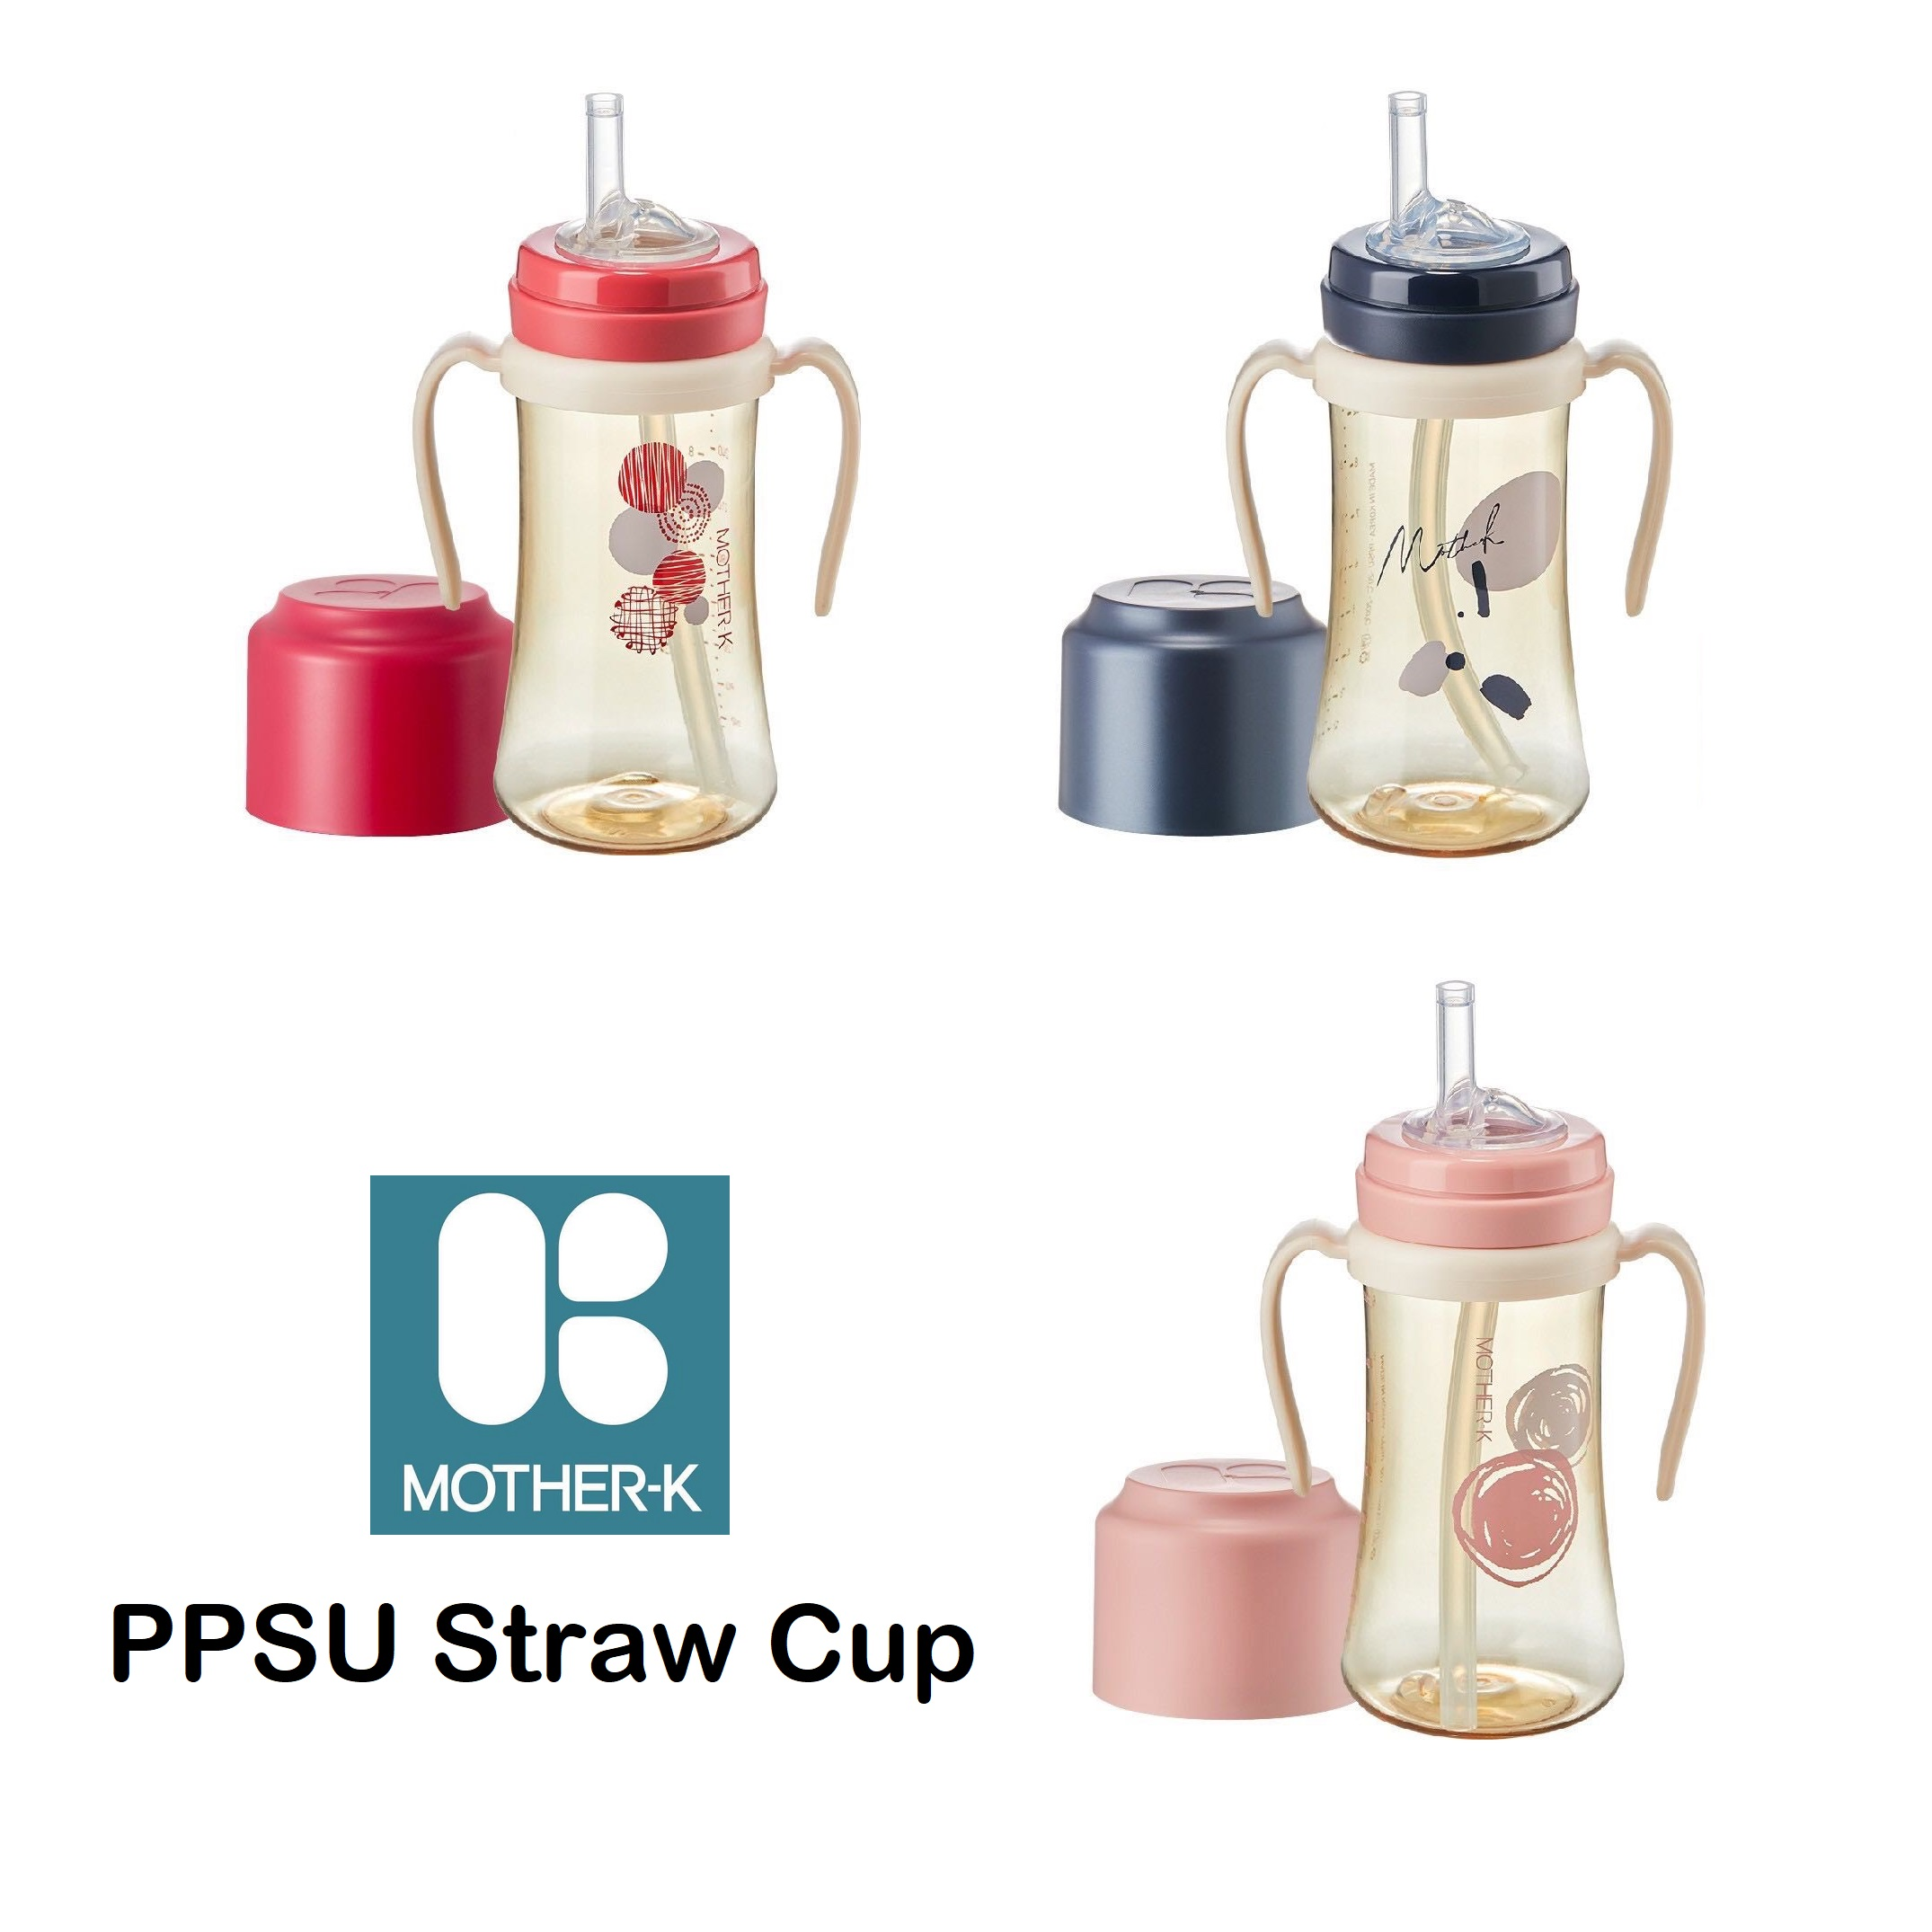 Mother-K PPSU Straw Cup